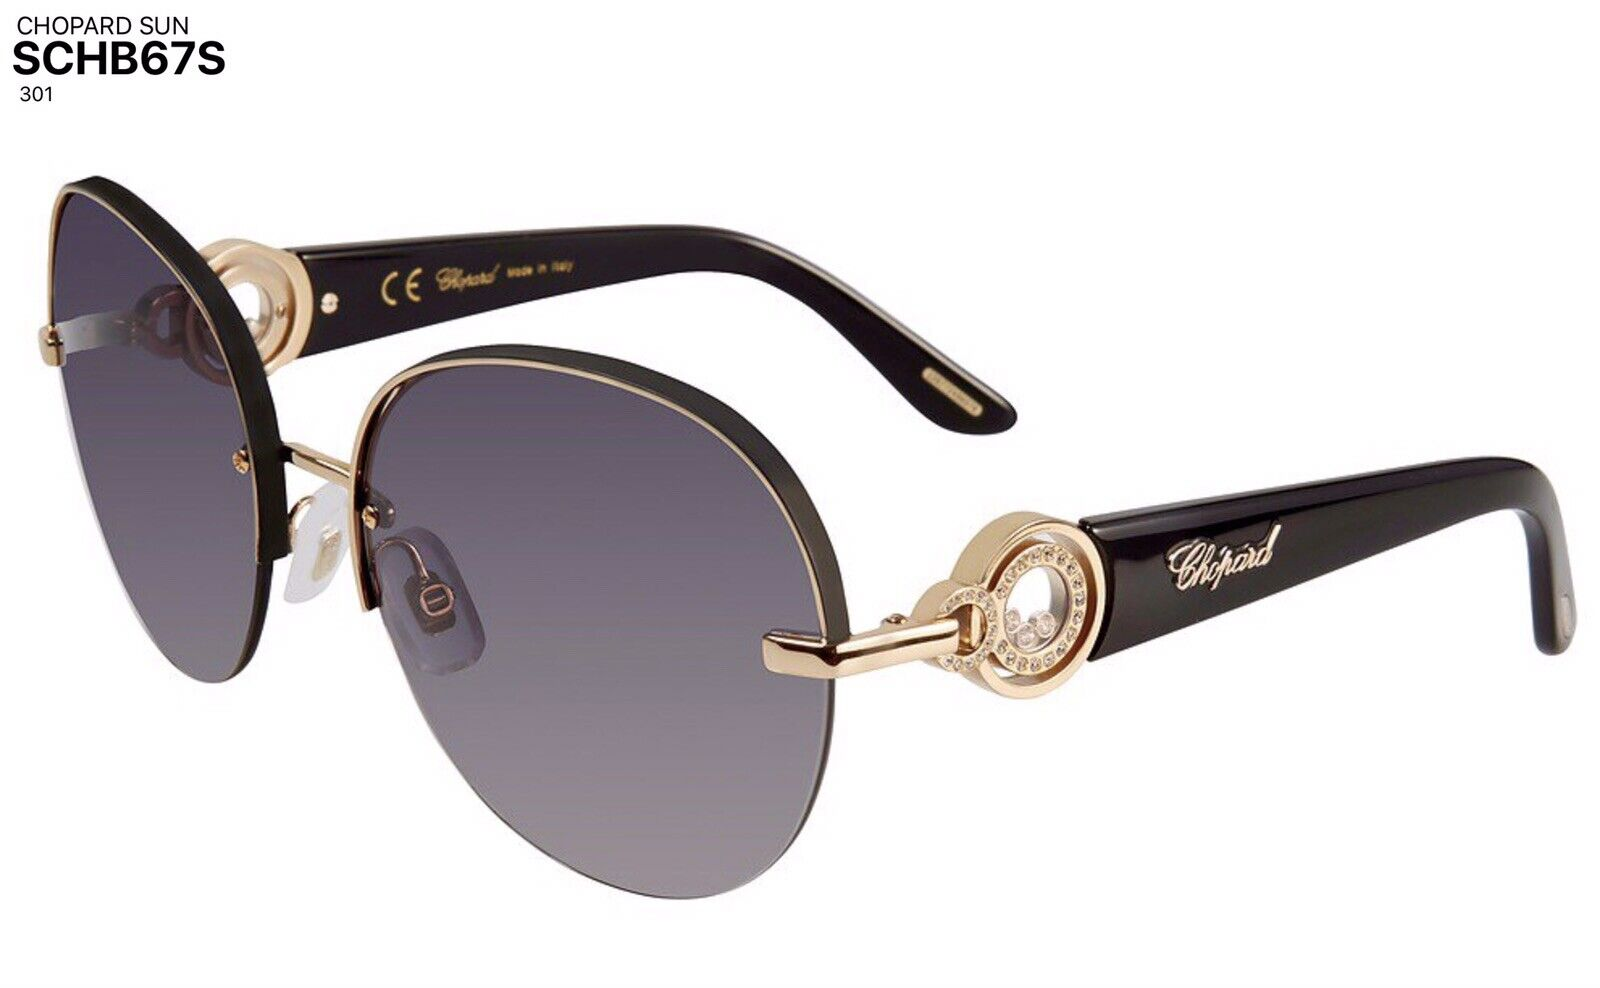 Chopard Sunglass SCHB67S 301 Black and Gold / Grey Gradient Lenses, NEW